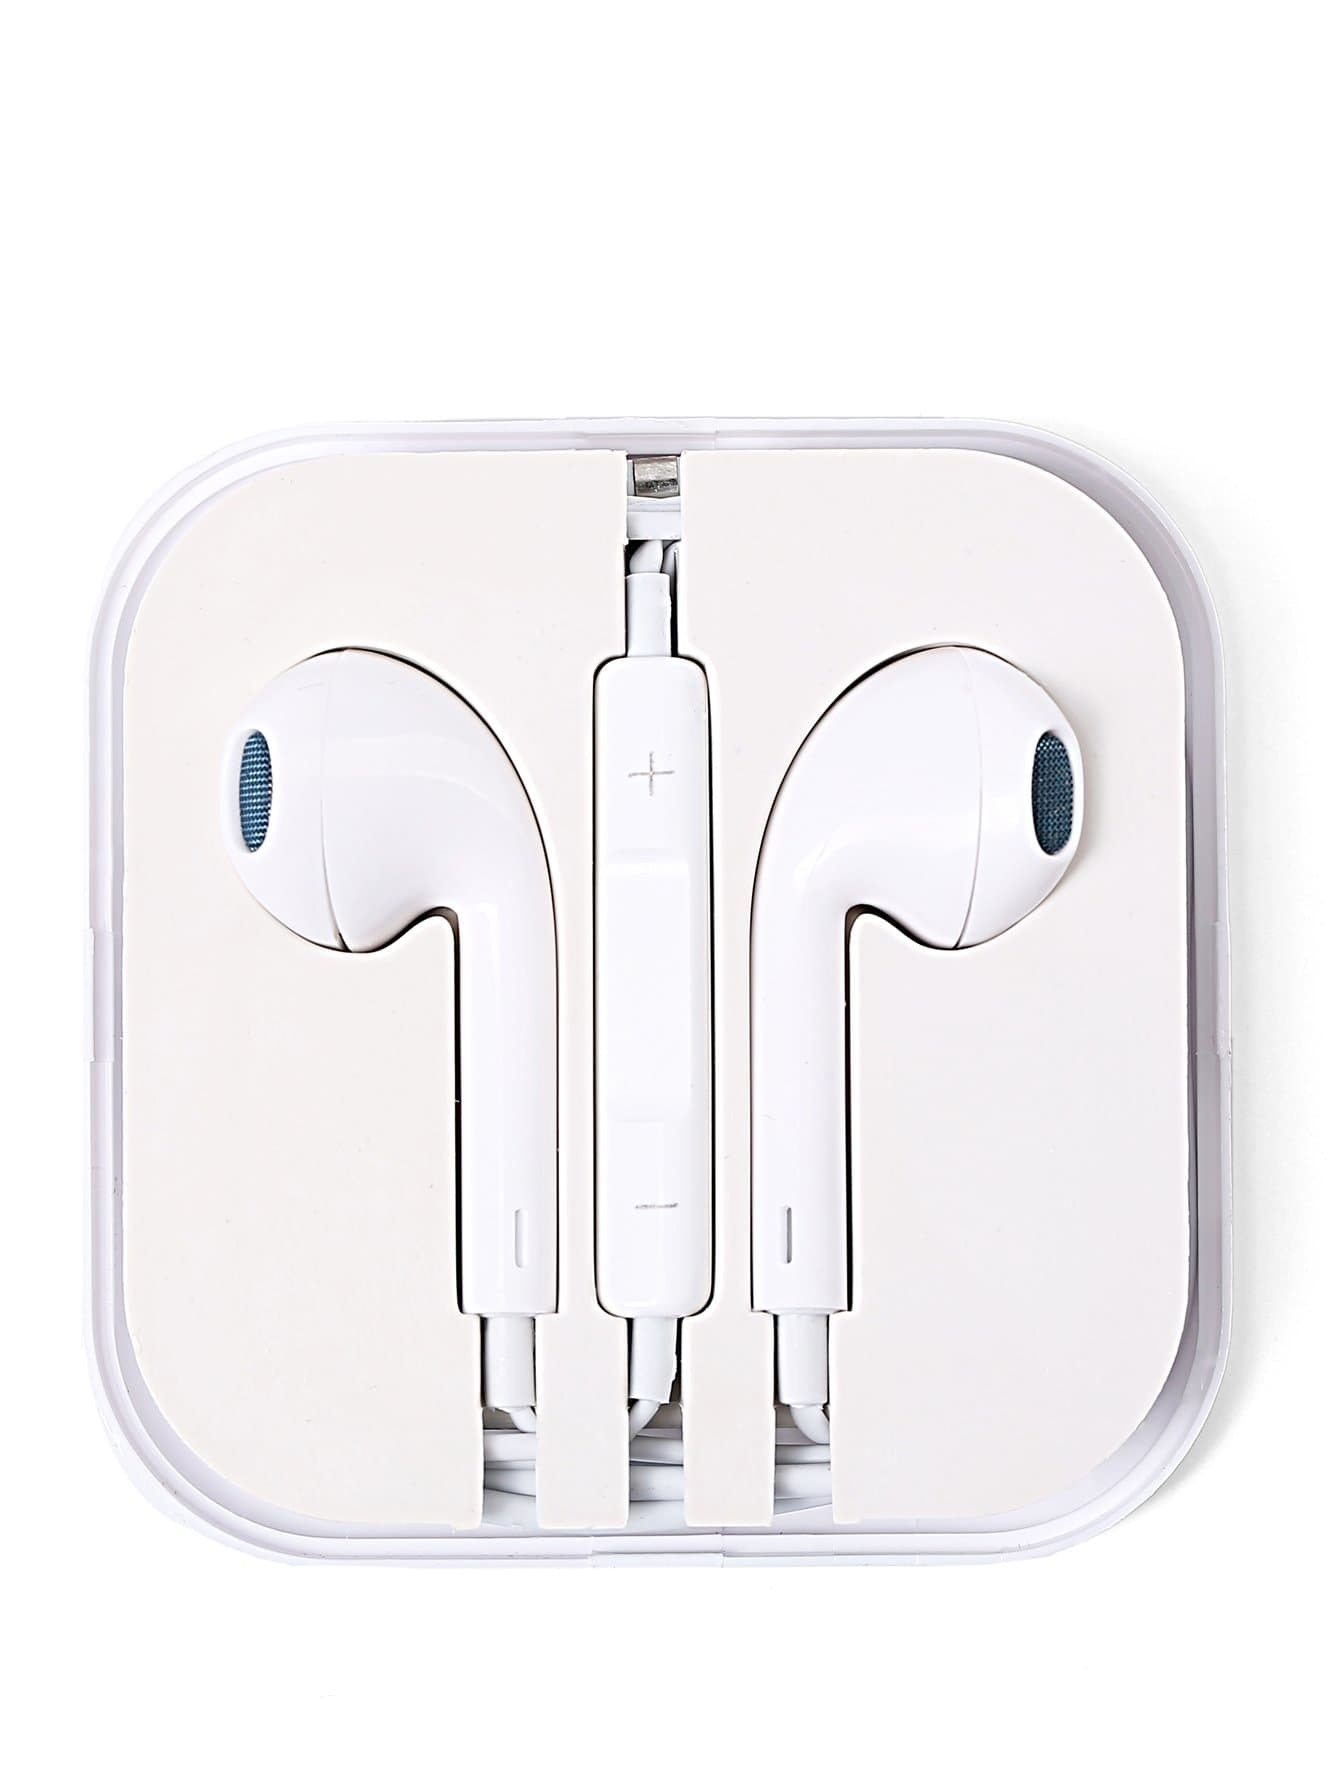 Ear Pods With Box Emmacloth Women Fast Fashion Online